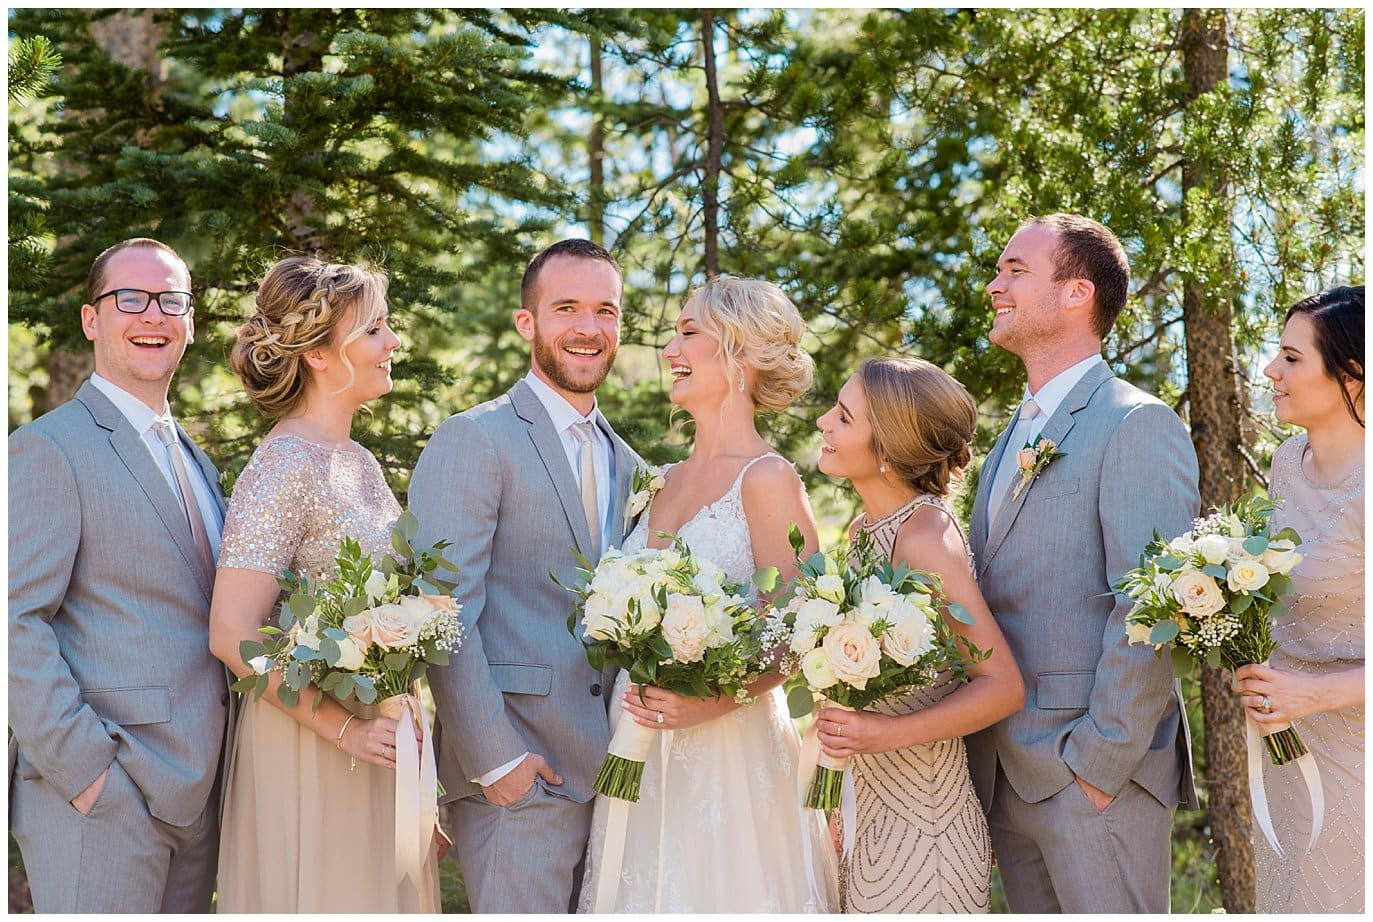 bright elegant wedding party in champagne wedding dresses and grey suites at Elegant Piney River Ranch wedding by Piney River Ranch wedding photographer Jennie Crate, Photographer